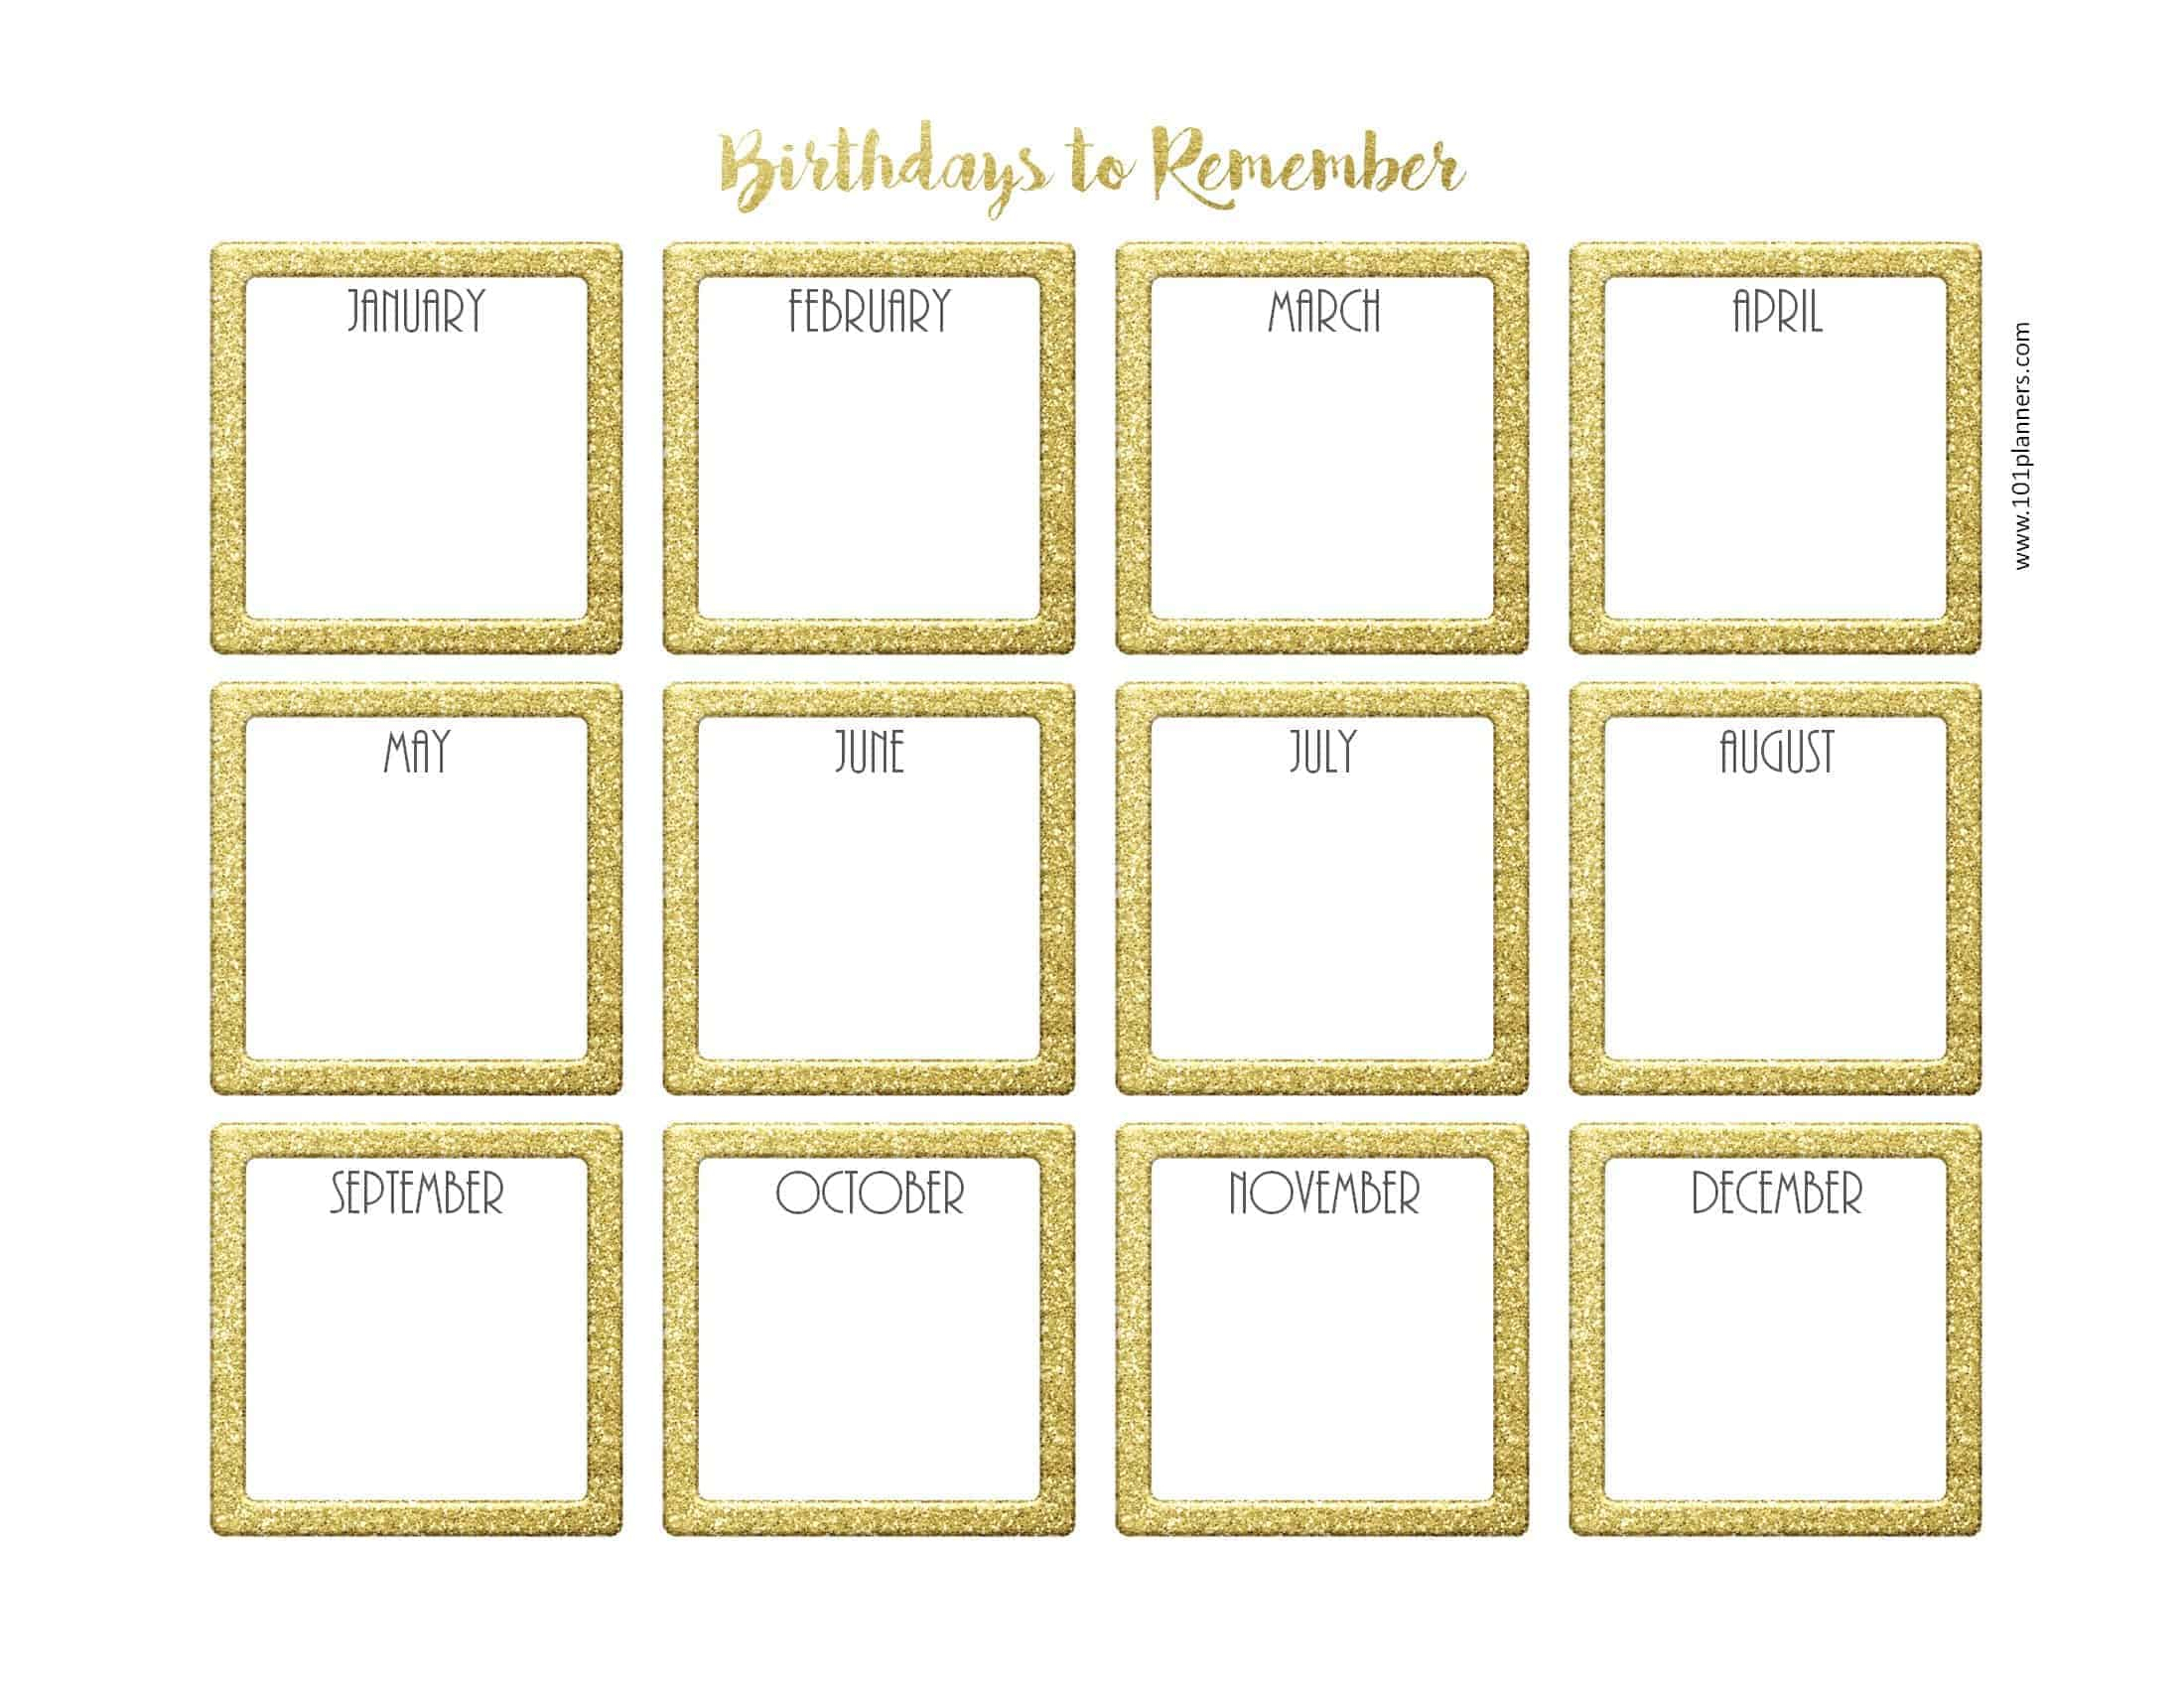 Staff Birthday Calendar  Bolan.horizonconsulting.co throughout Monthly Birthday Calendar Template